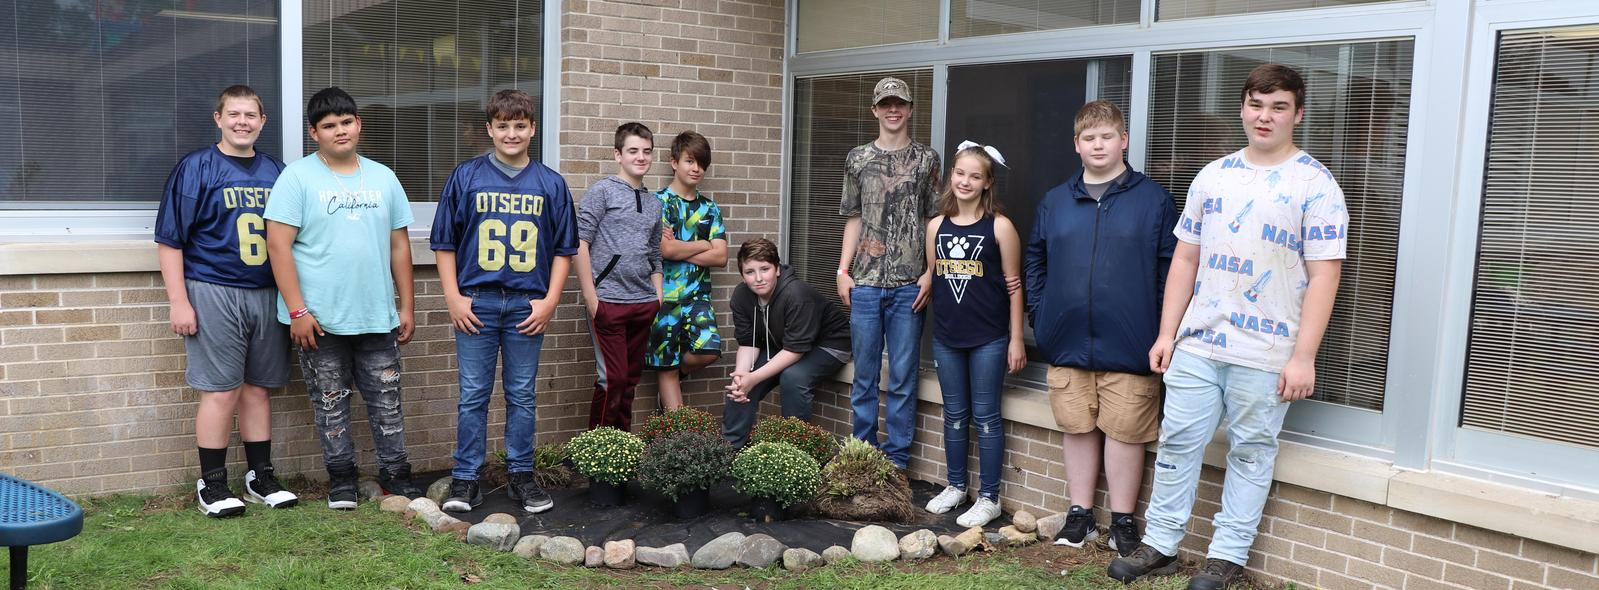 Students by the flower bed they planted in the courtyard.